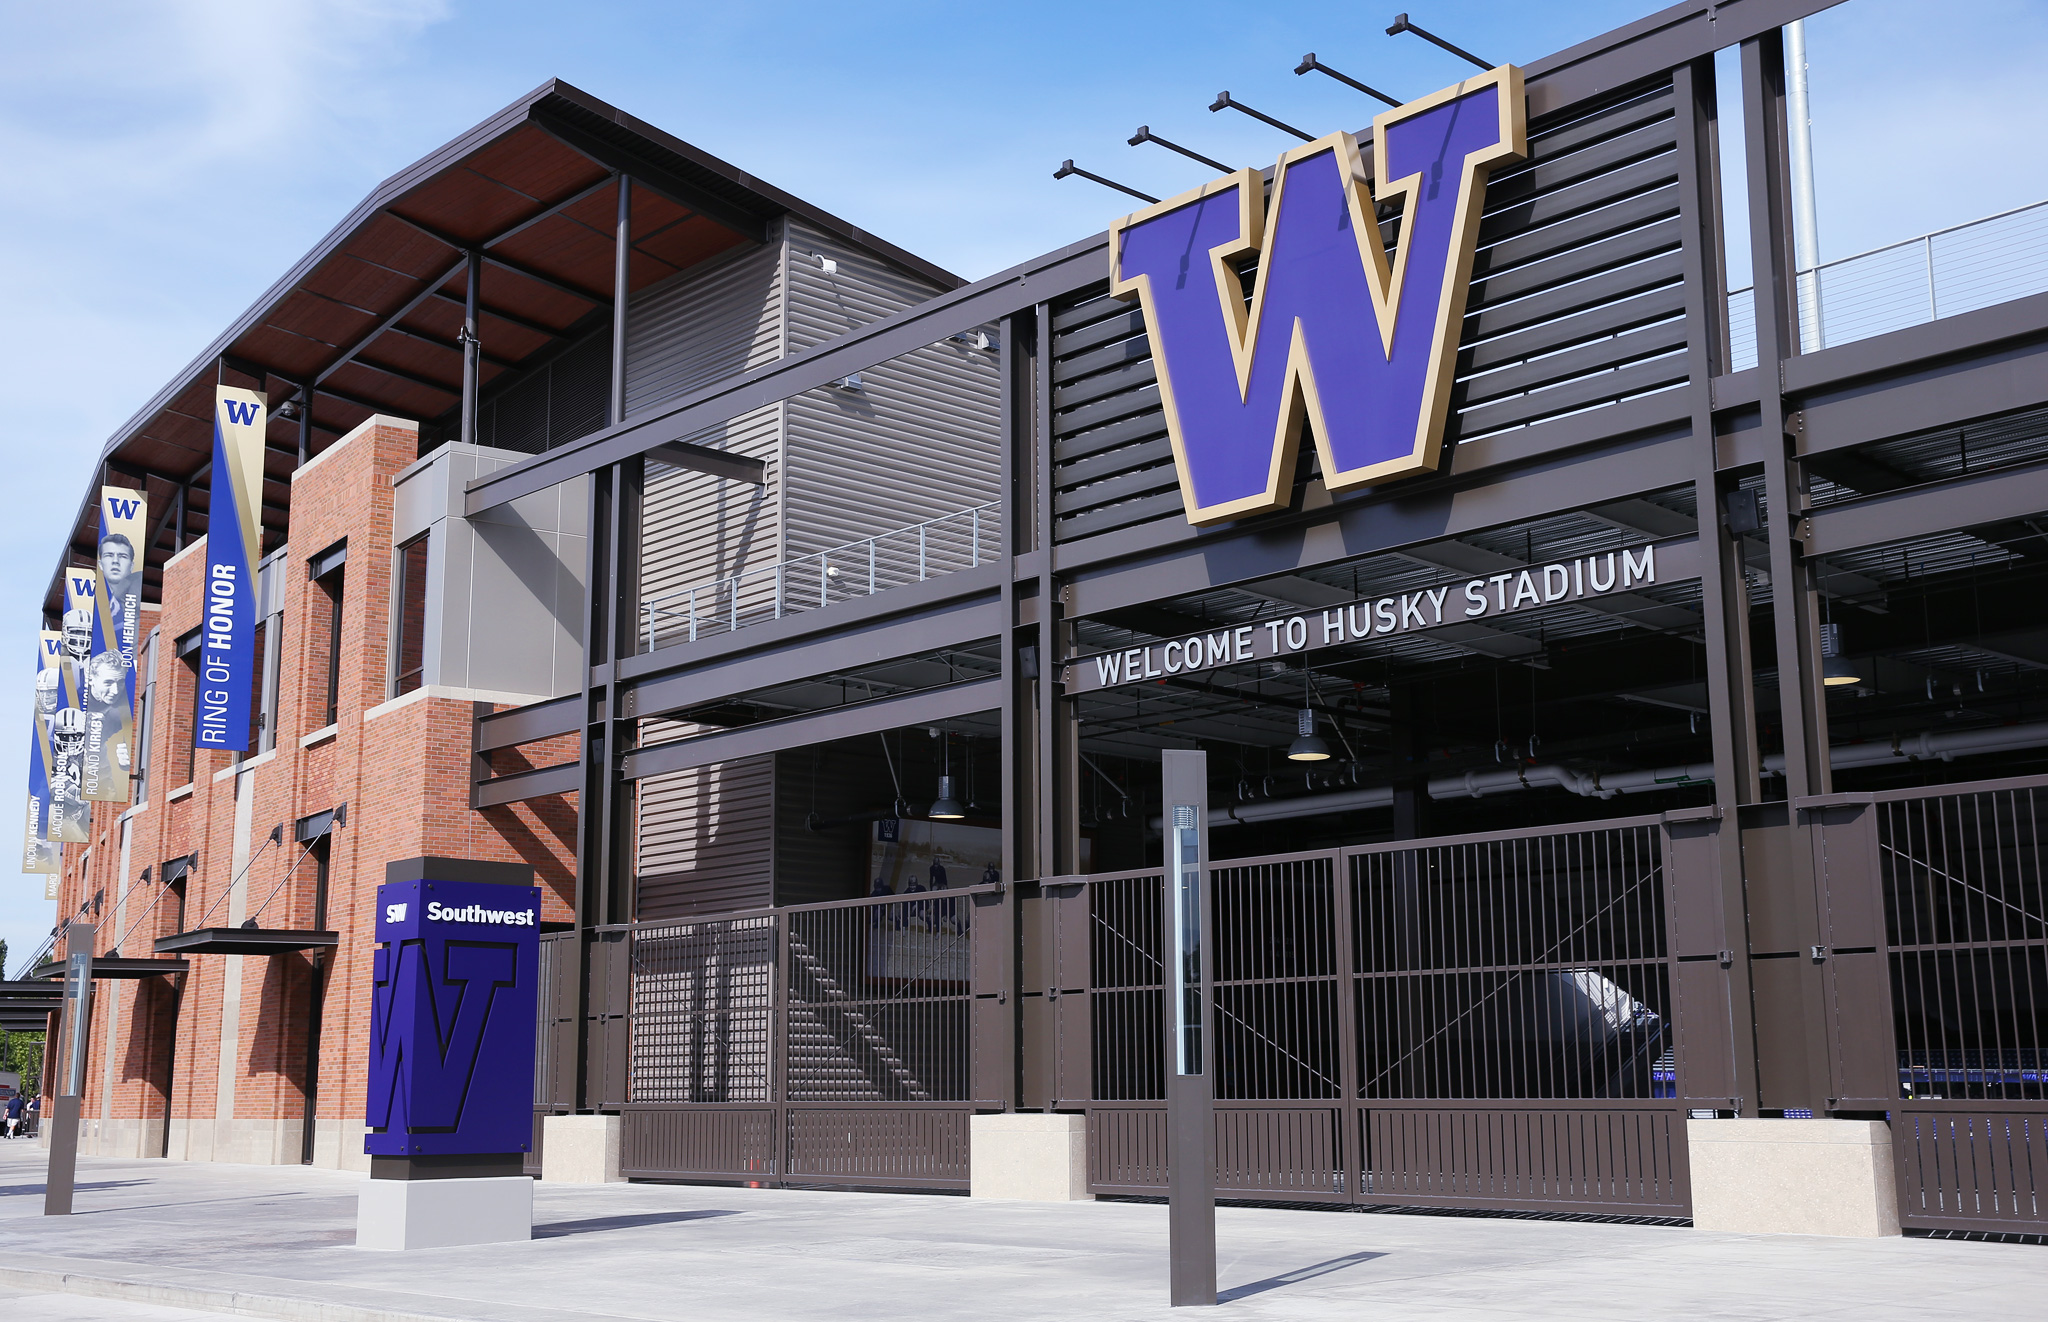 Southwest entrance of Seattle's Husky Stadium